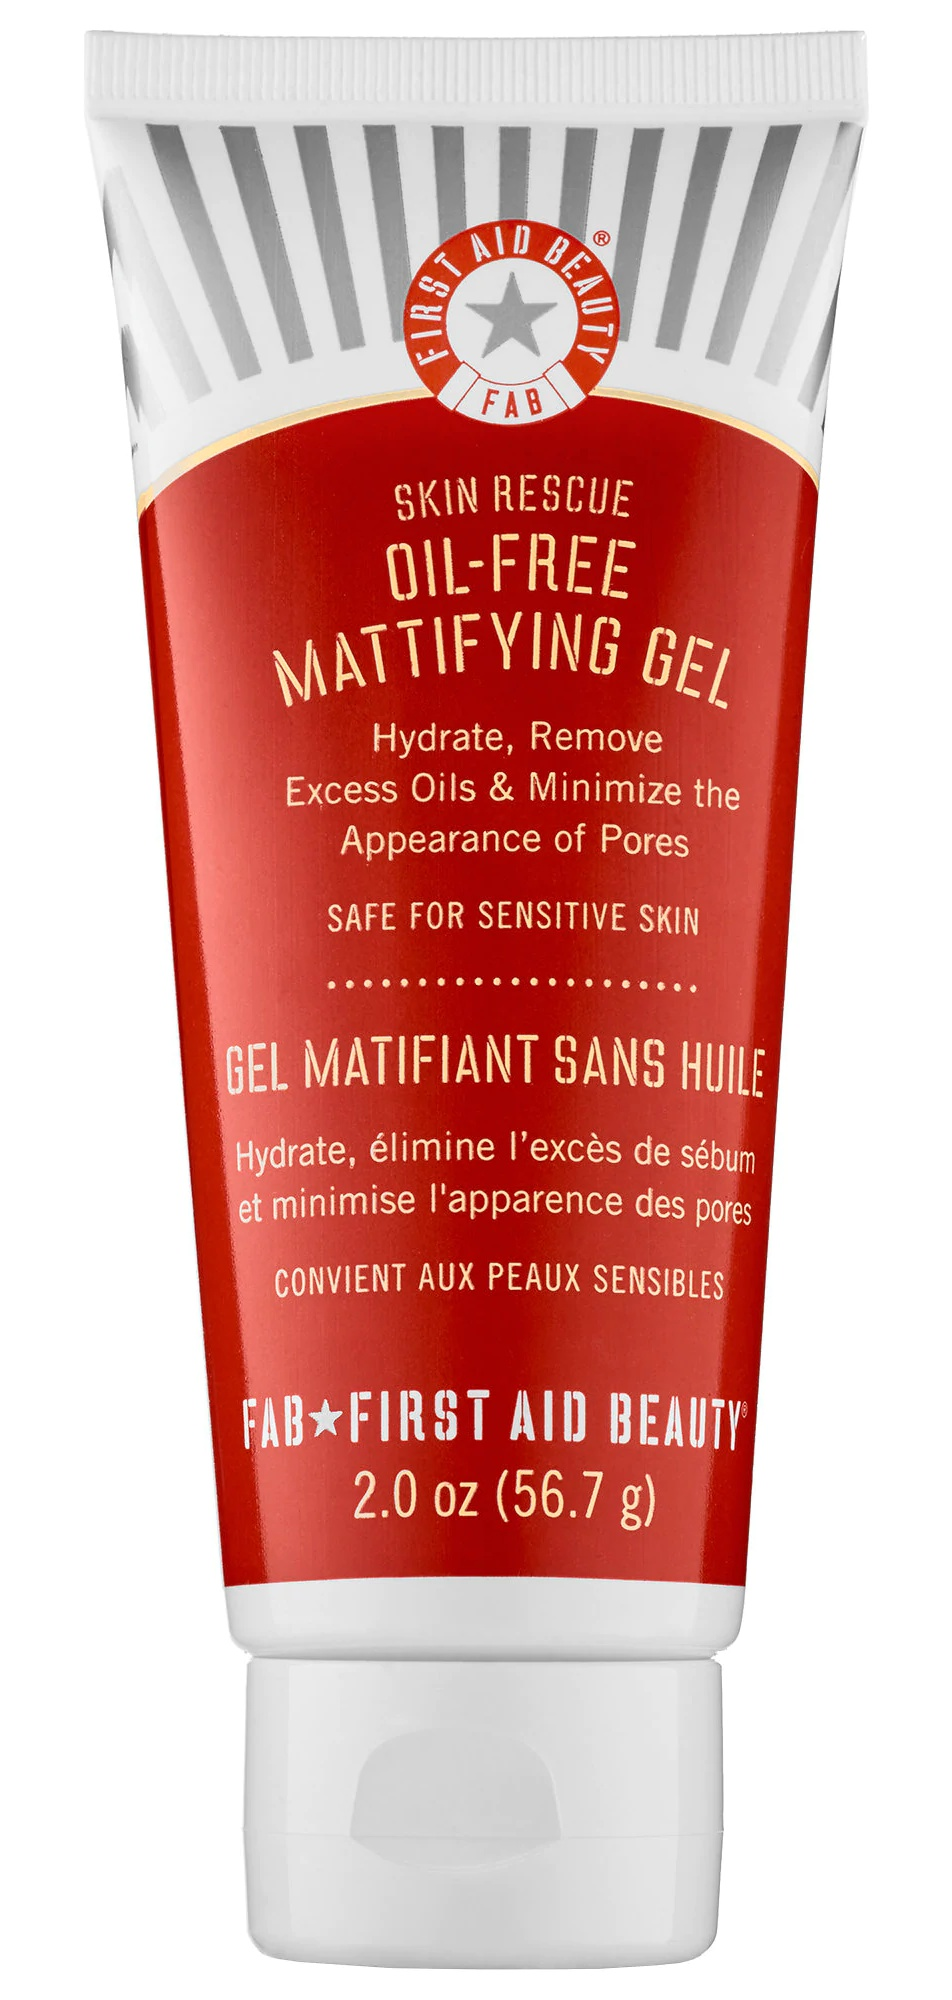 First Aid Beauty Skin Rescue Oil-Free Mattifying Gel Moisturizer